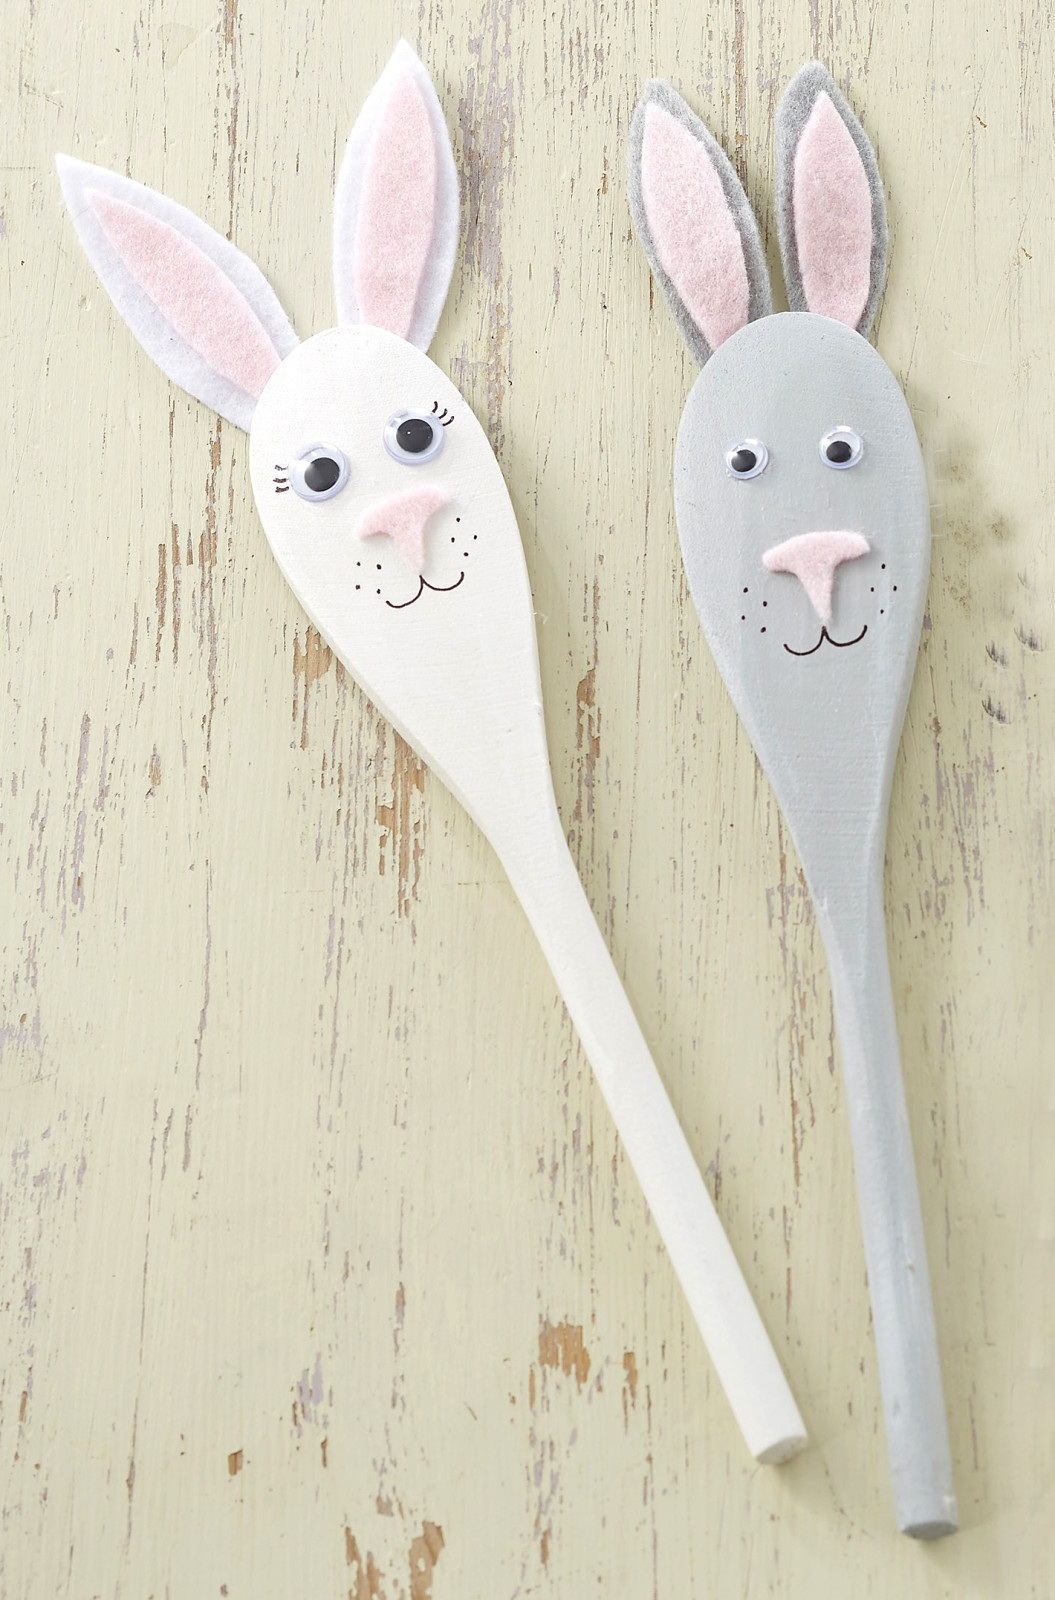 How to Make Easter Bunny Spoon Puppets